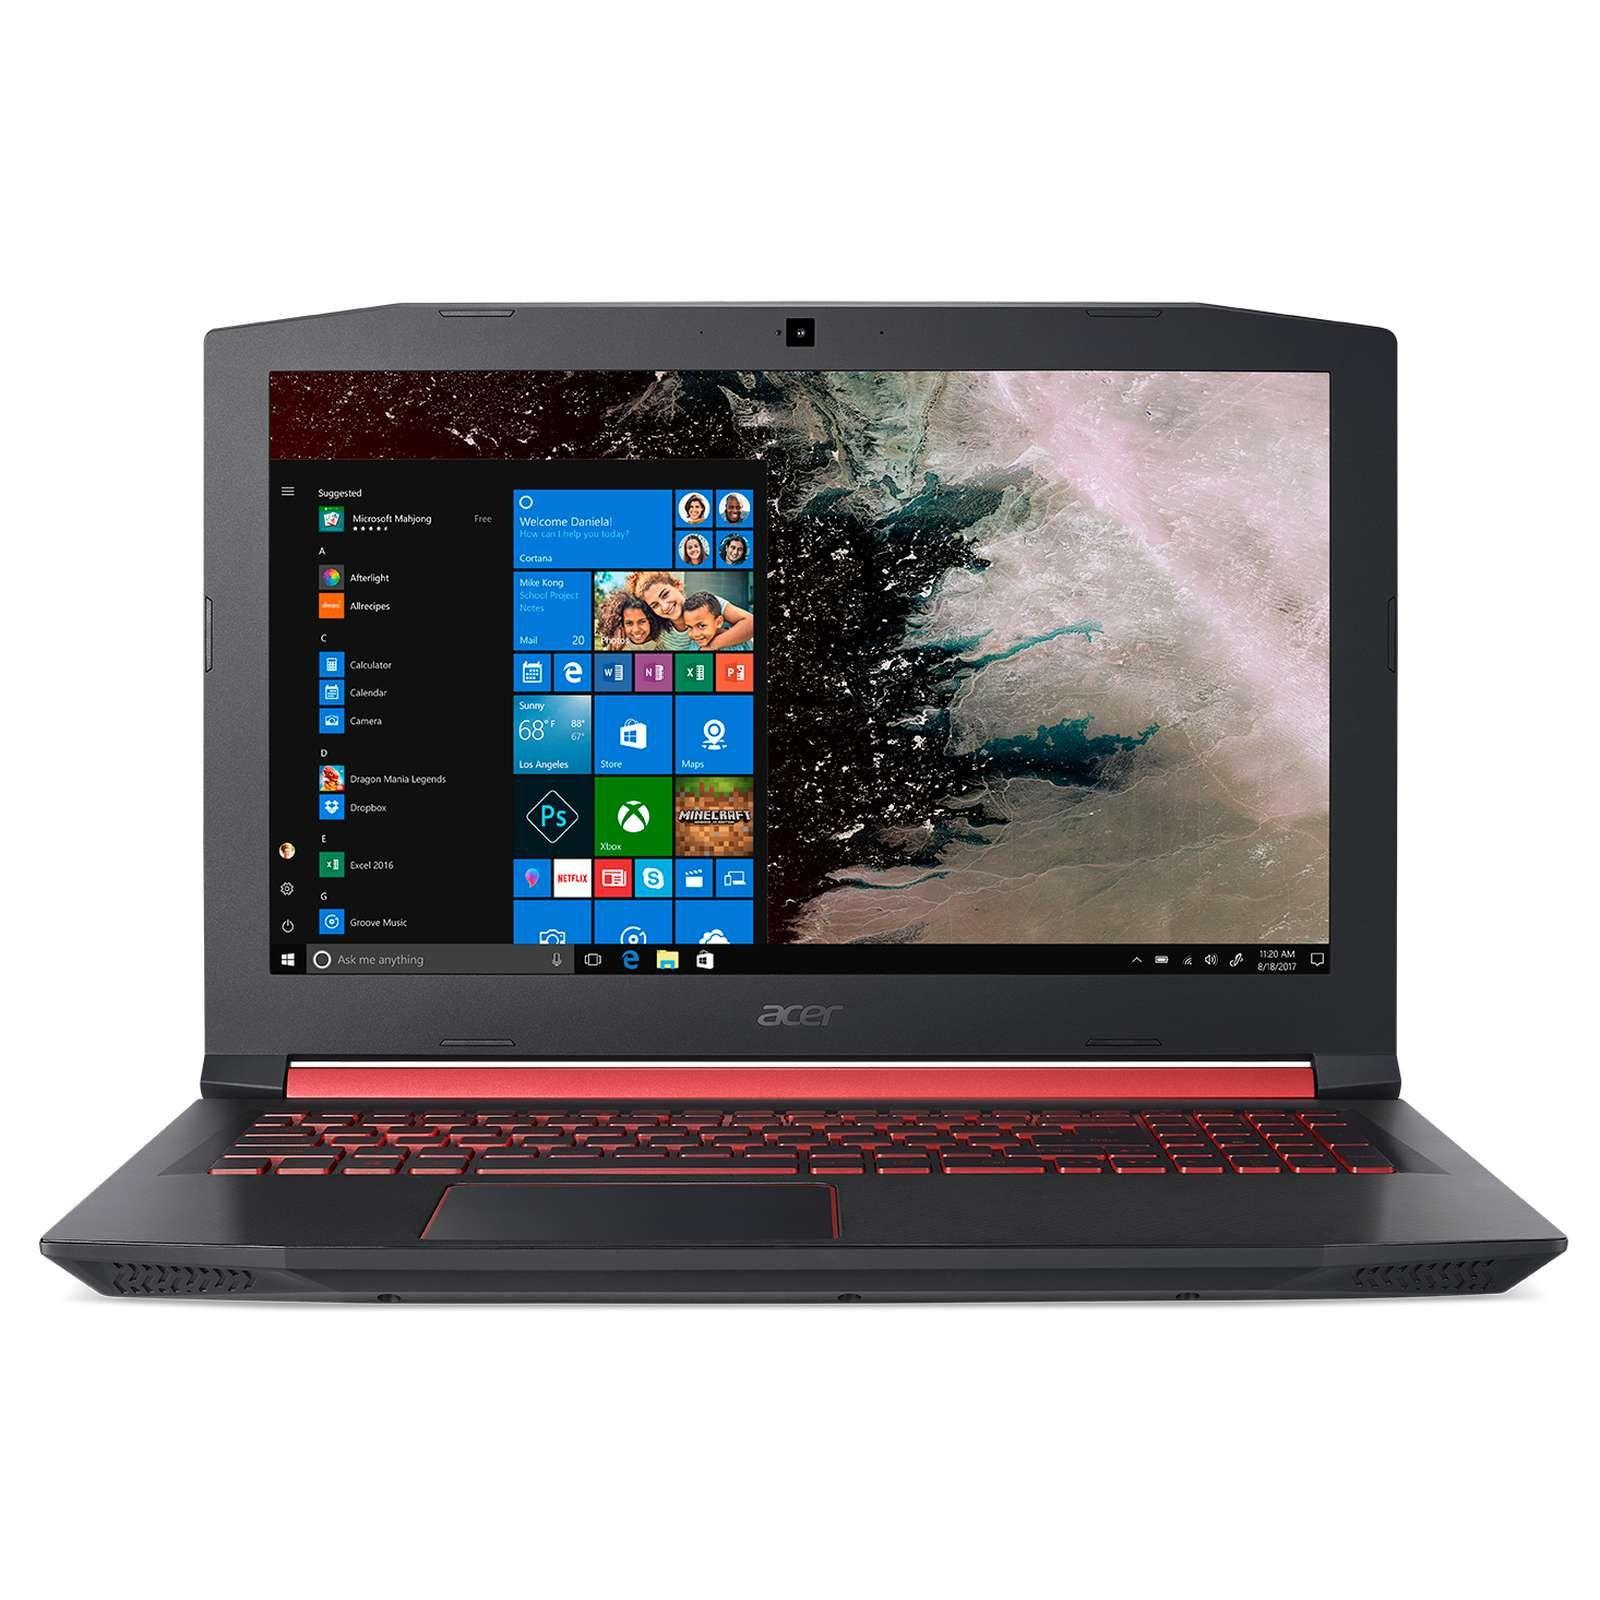 ACER AN515-52-70QH (BLACK) 15.6 IN INTEL CORE I7-8750H 16GB 1TB + 256GB SSD WIN 10